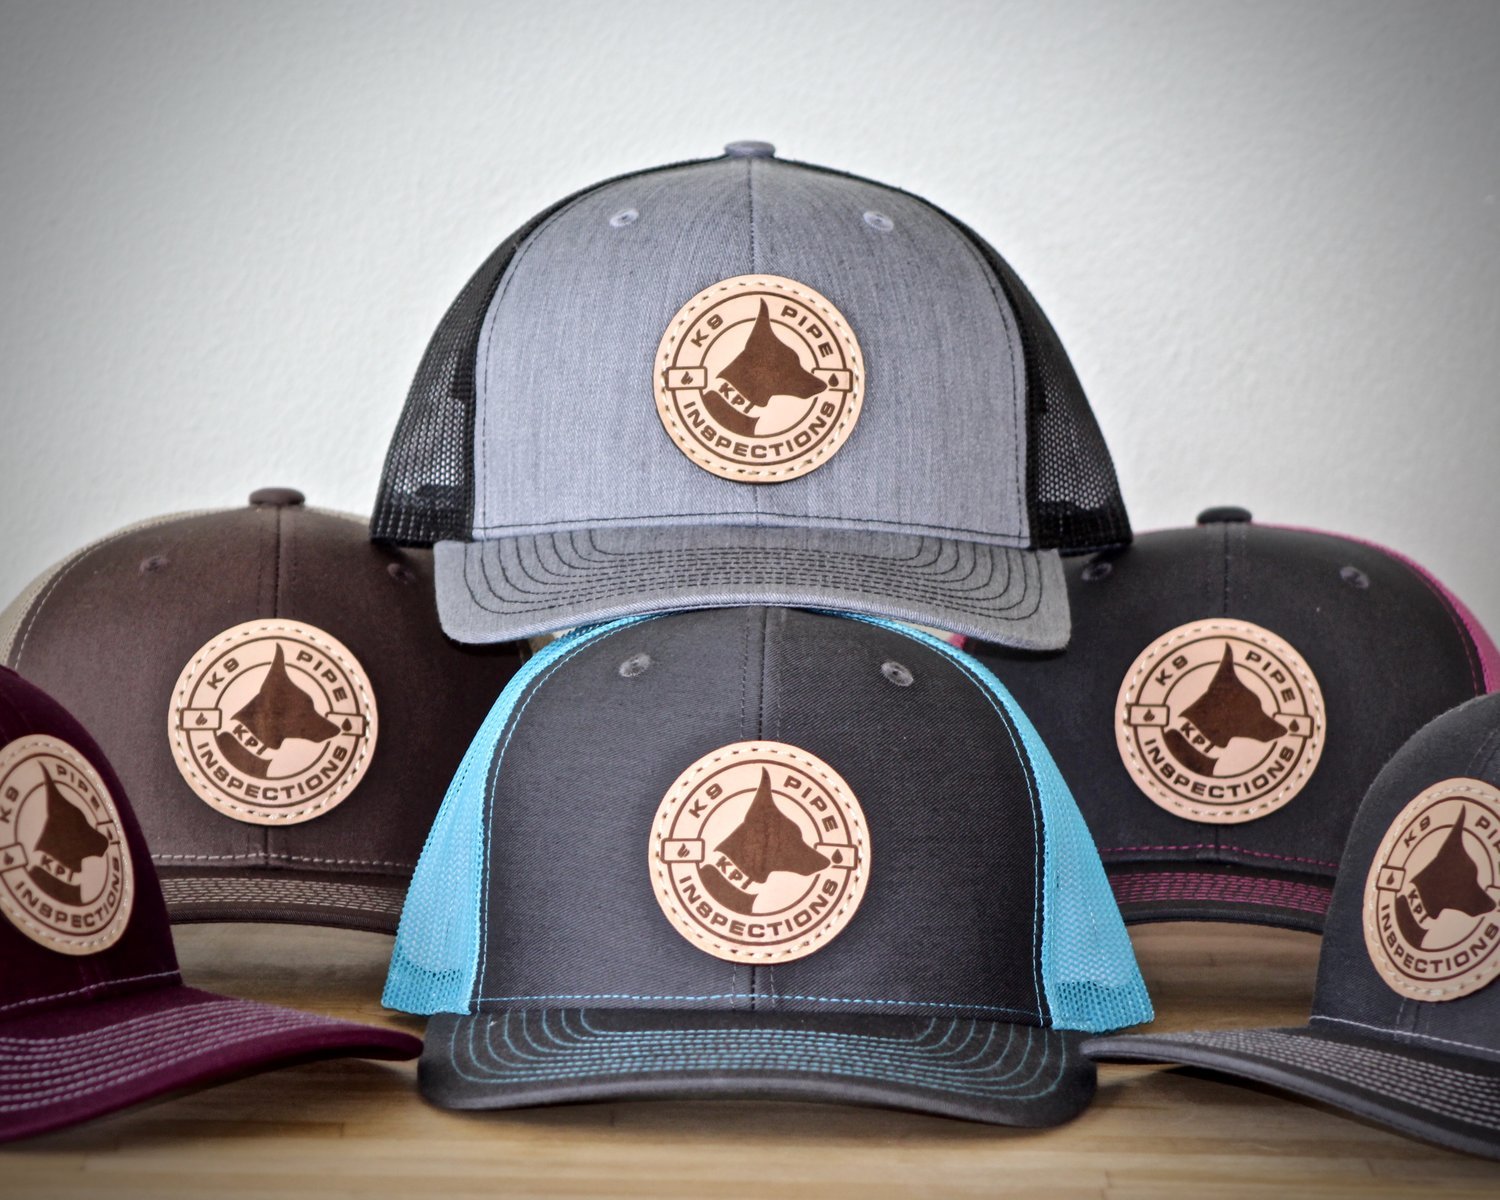 LEATHER PATCH KPI TRUCKER HATS